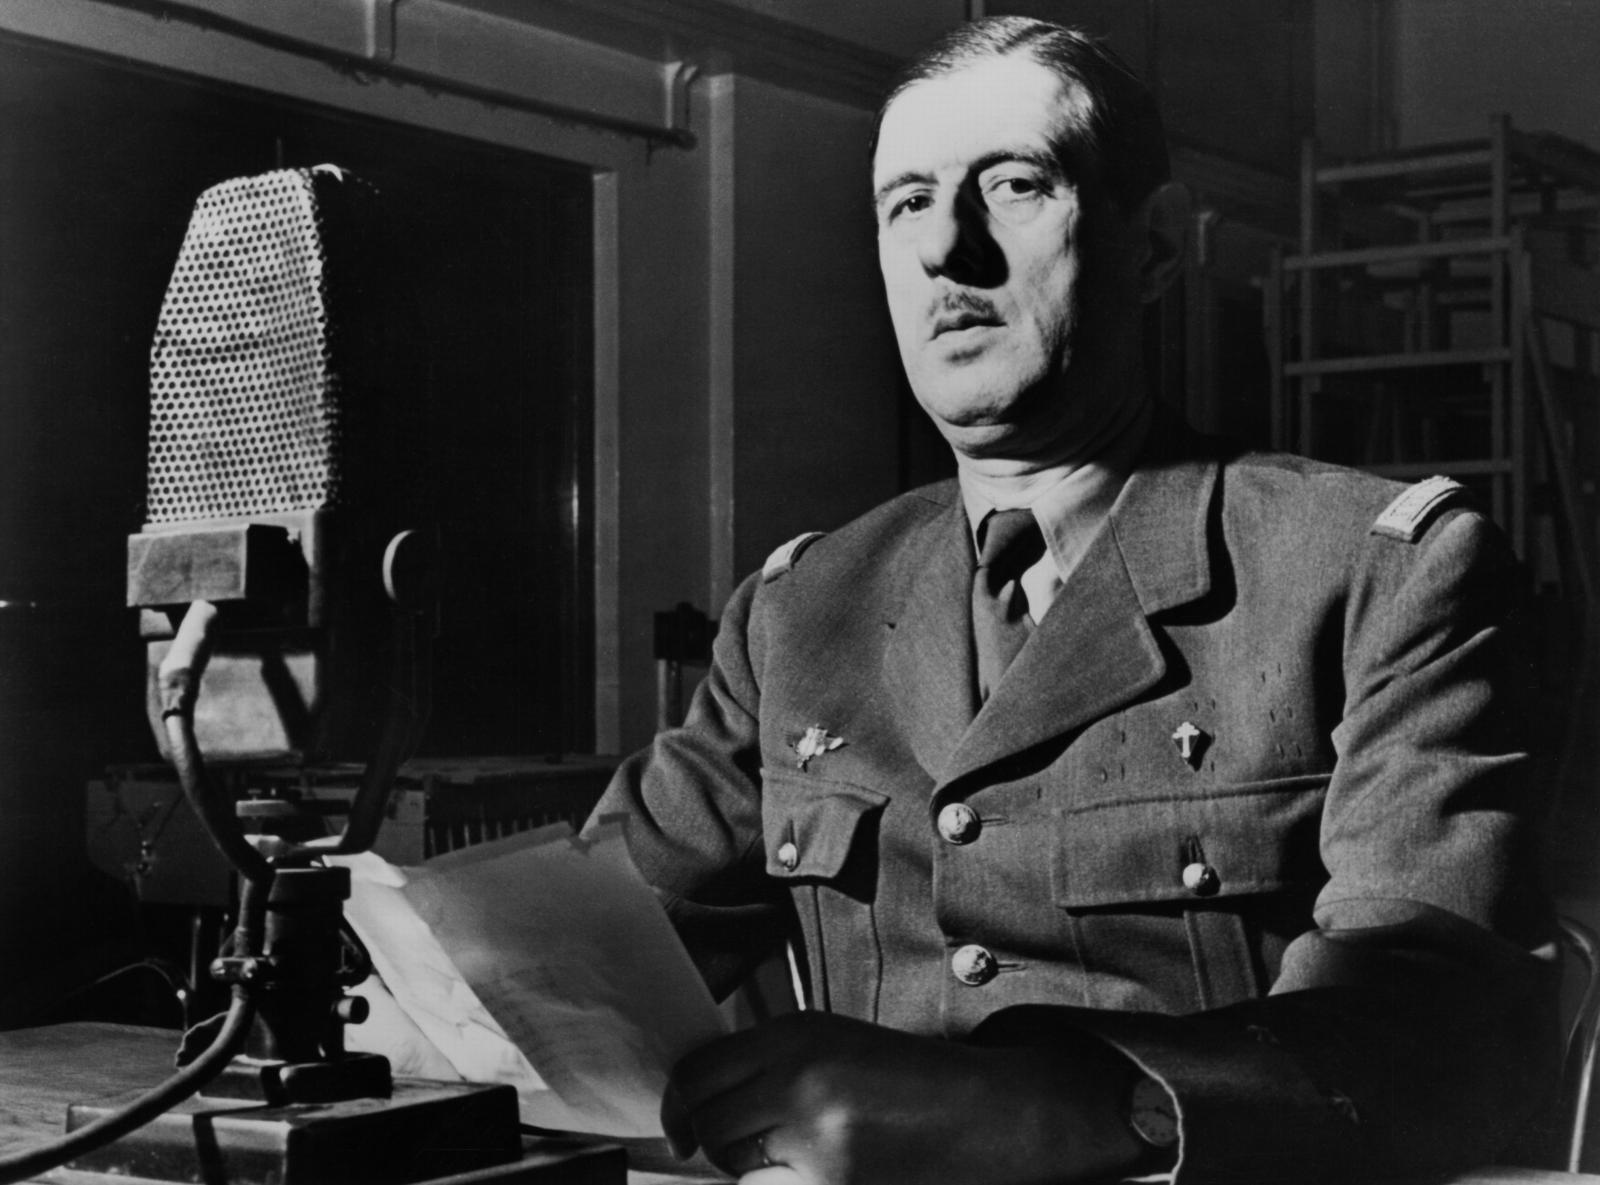 charles de gaulle essay Charles de gaulle was never a politician he was a leader for the french society he spent most of his life trying to revitalize france so it could be recognized as a world champs elysees essay, research paper champs elysees the champs  the arc de triomph and the place charles de gaulle.